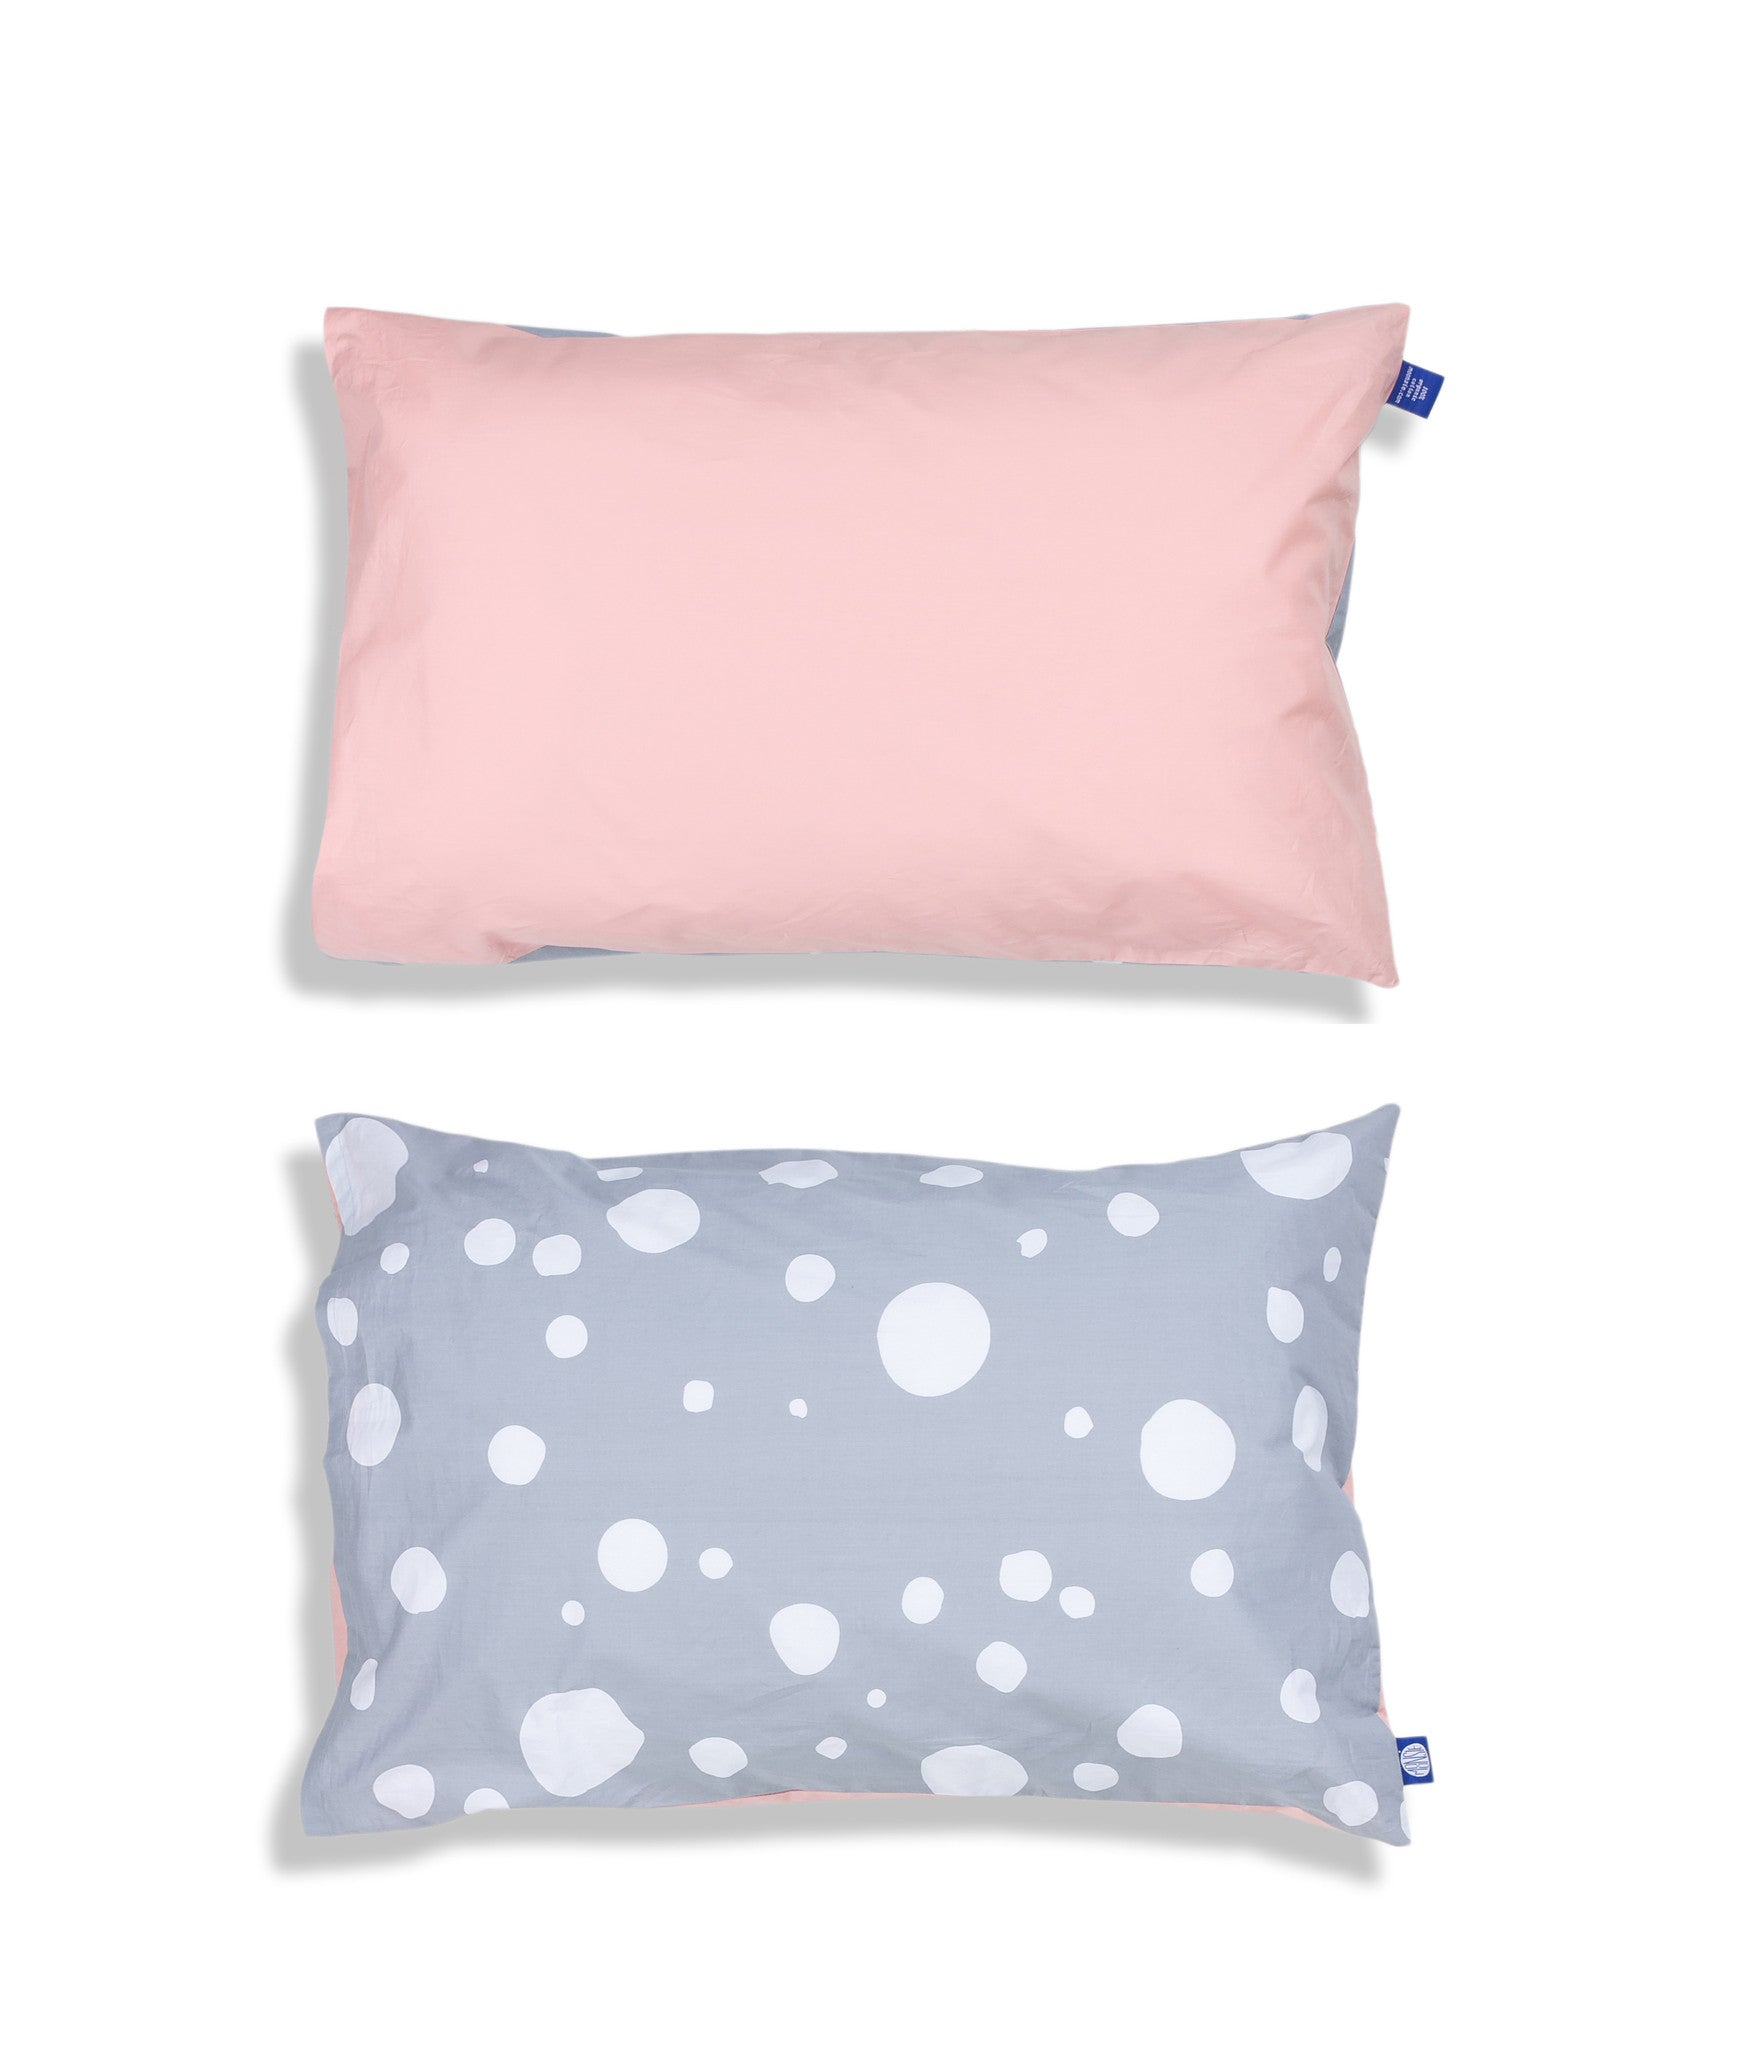 Solid colour top and grey patterned reverse organic cotton kids pillow case. Envelope closure. Pink and grey colours. Dotted pattern.